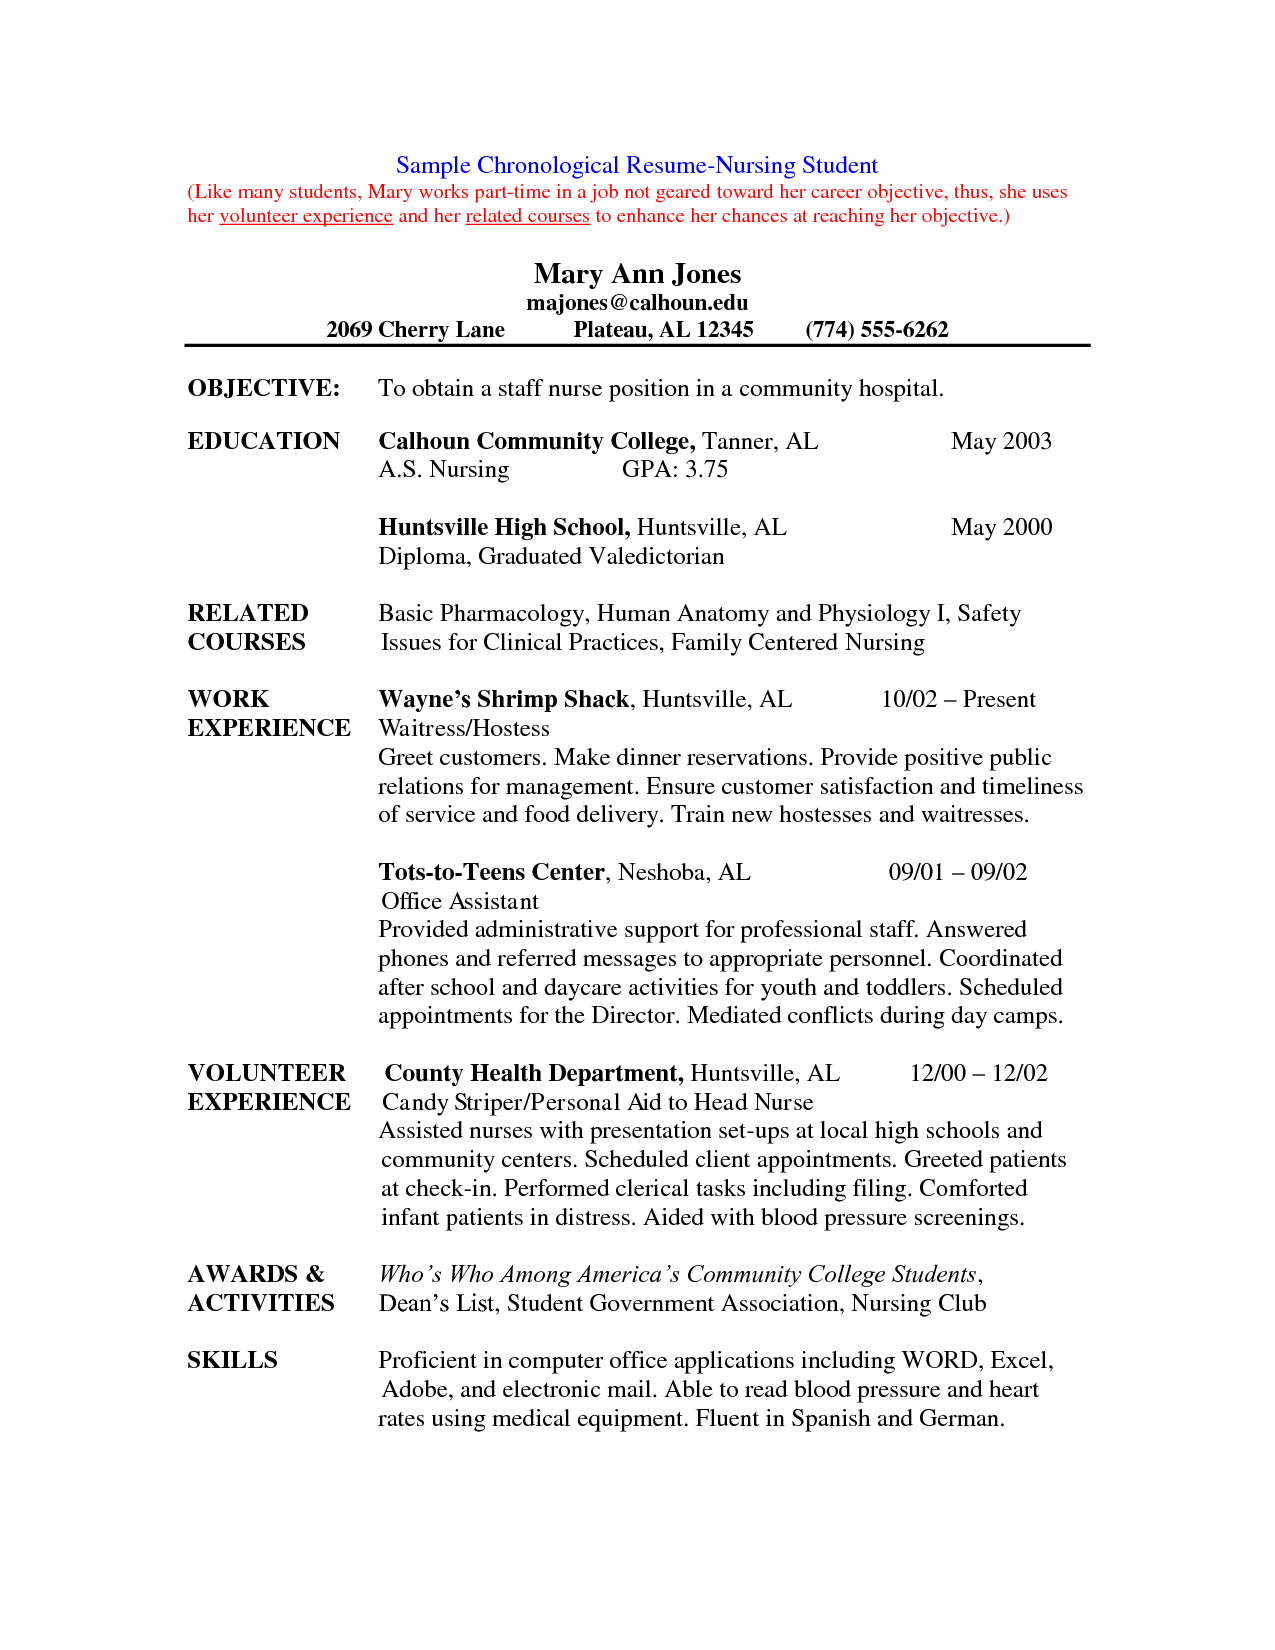 Sample Resume Skills Nursing Student Resume Template Hdresume Templates Cover Letter